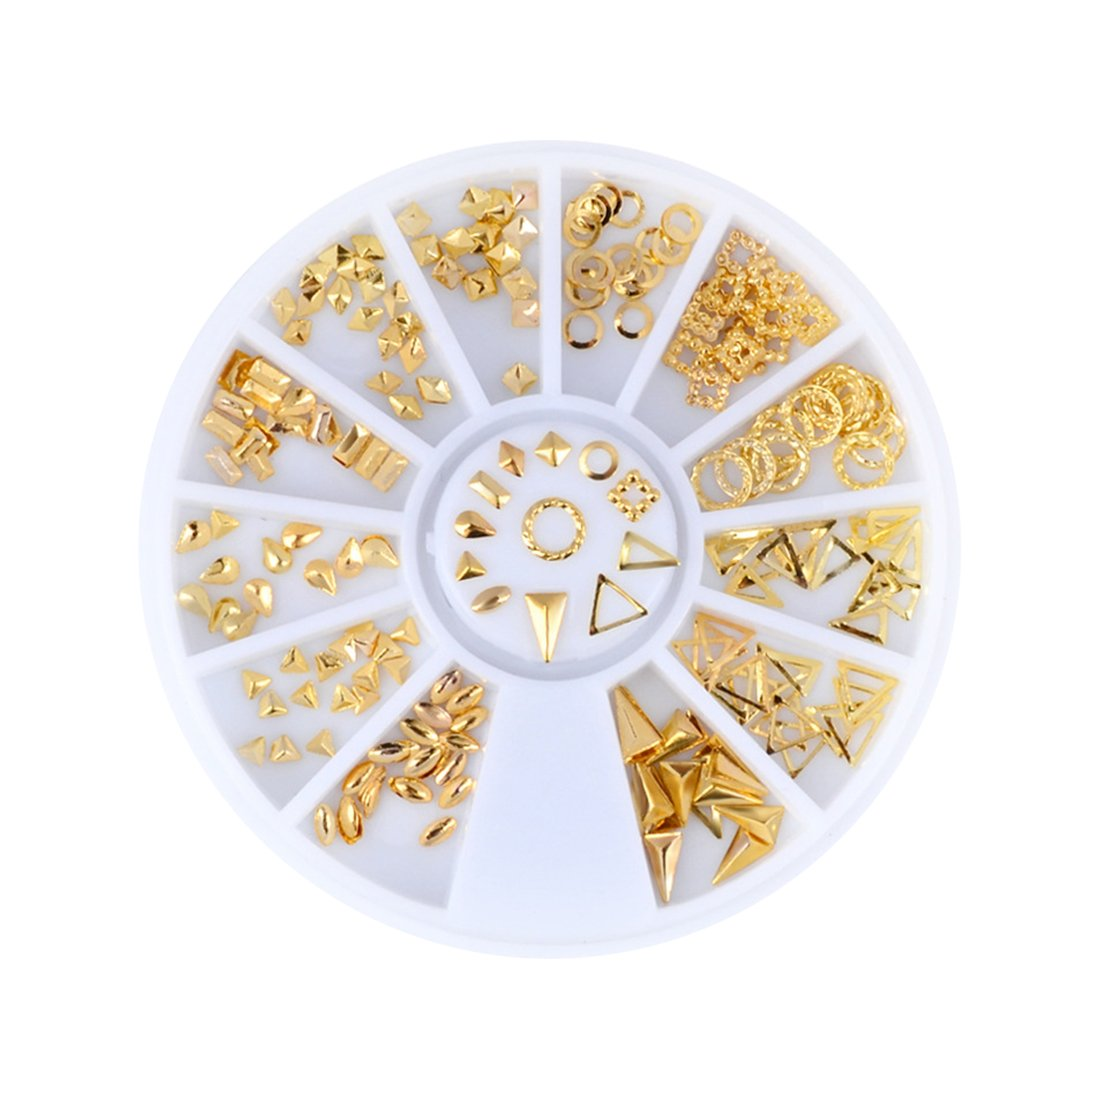 Triangle Square Designs Gold Metal Hollow Nail Art Studs Nail Art Decorations